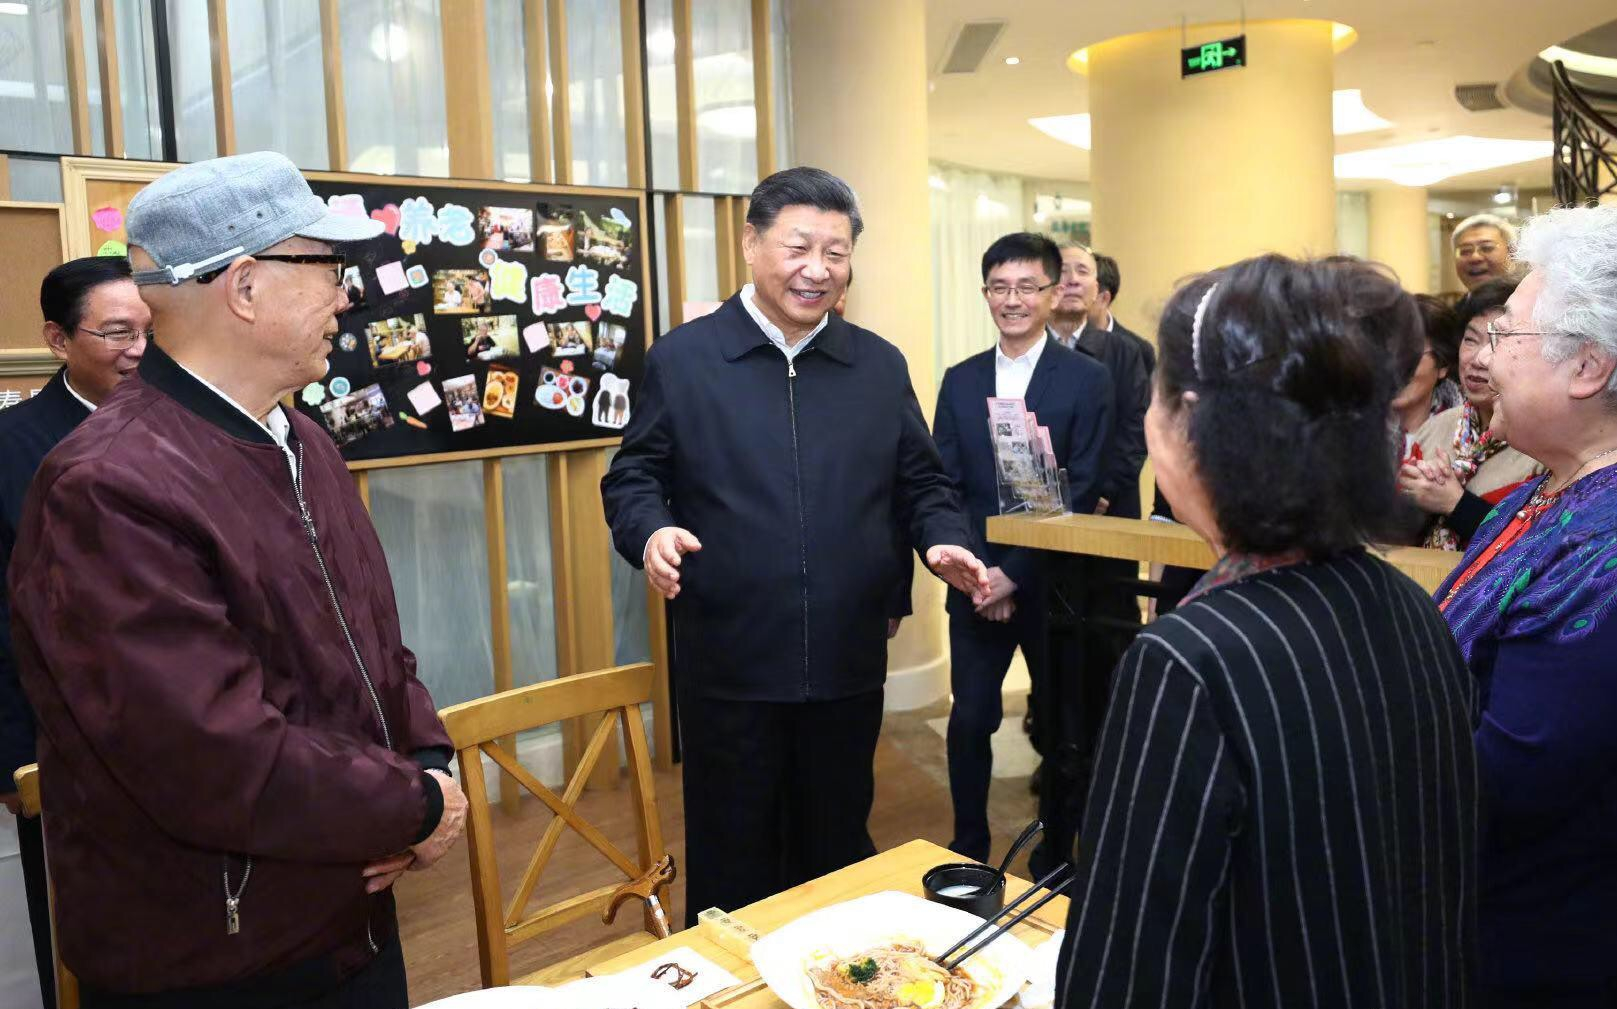 Xi Jinping: China's democracy reflected in all procedures